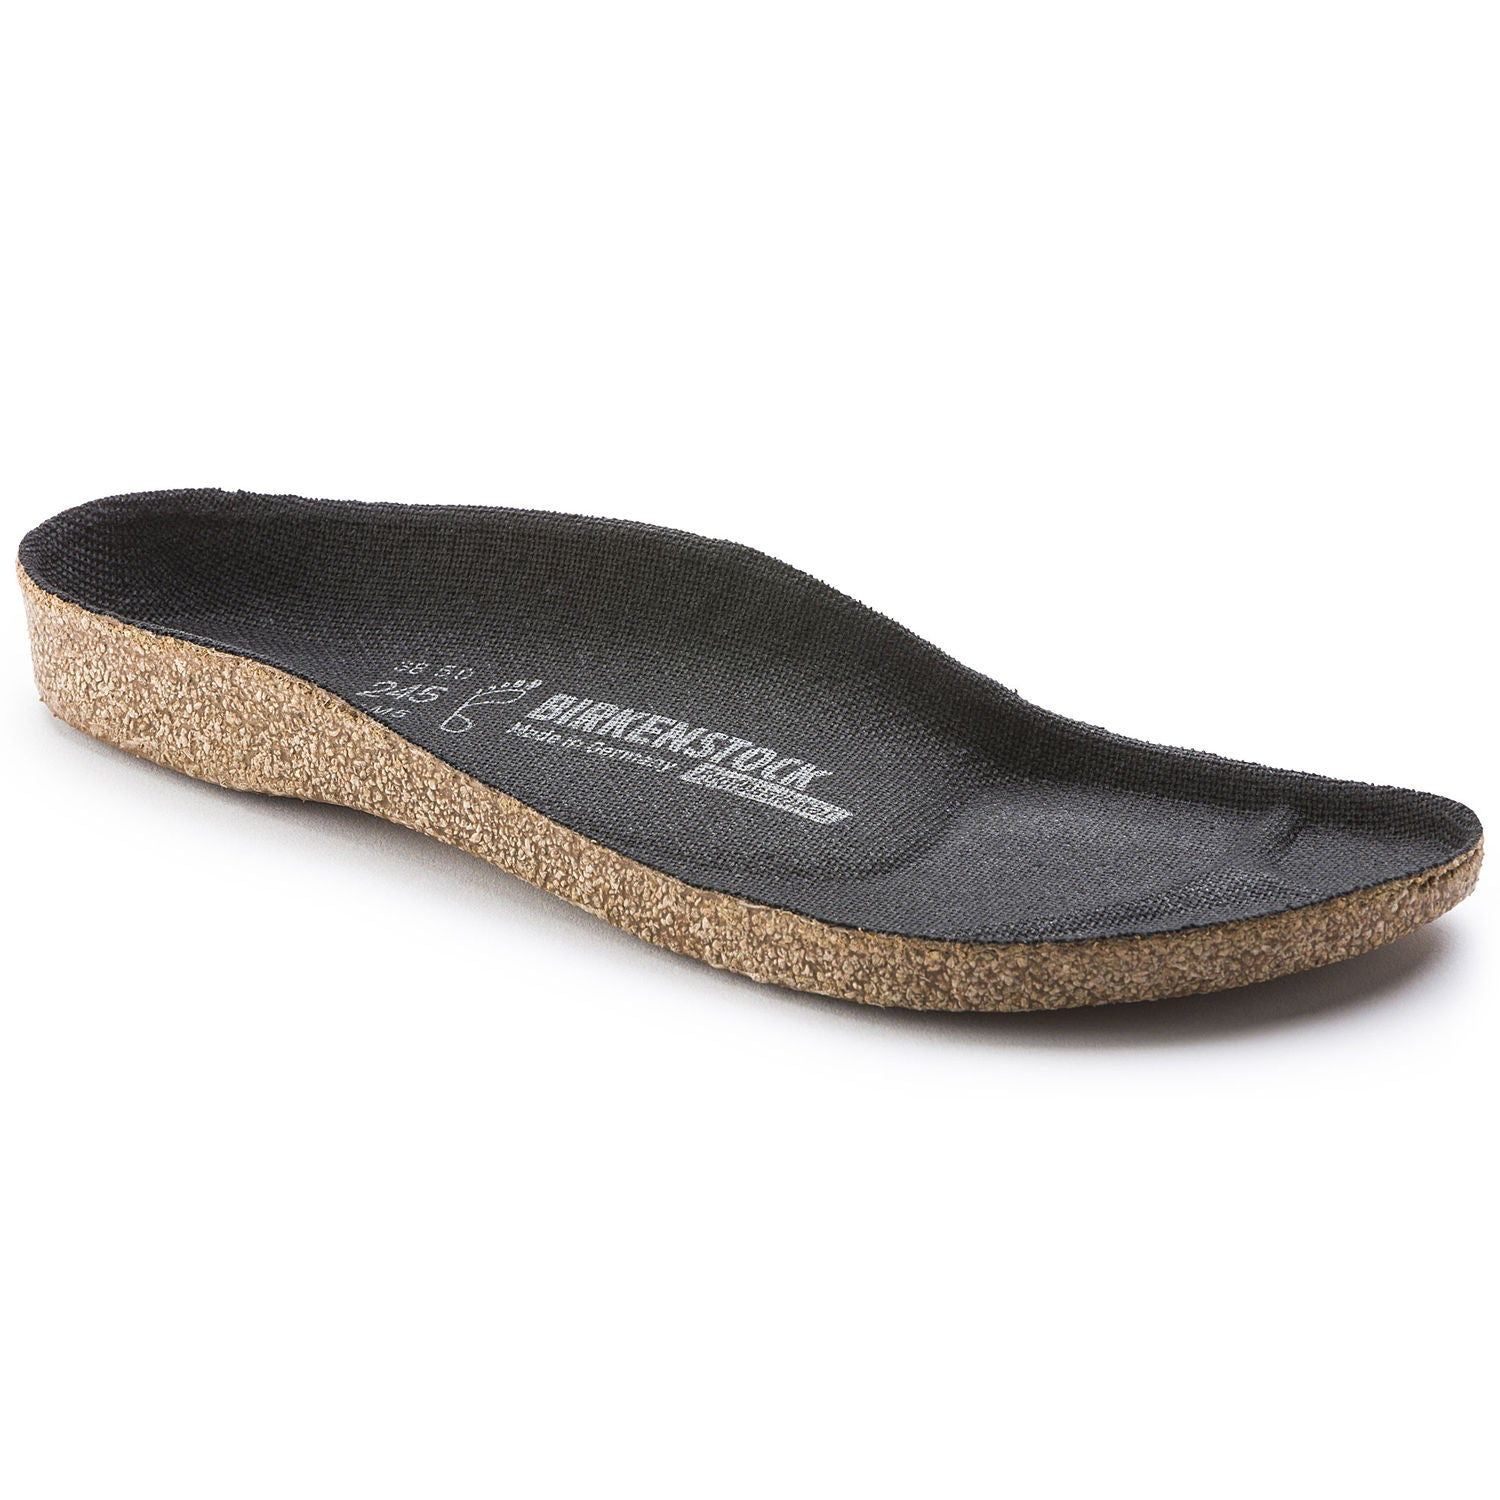 Replacement Insole : Cork - Complete